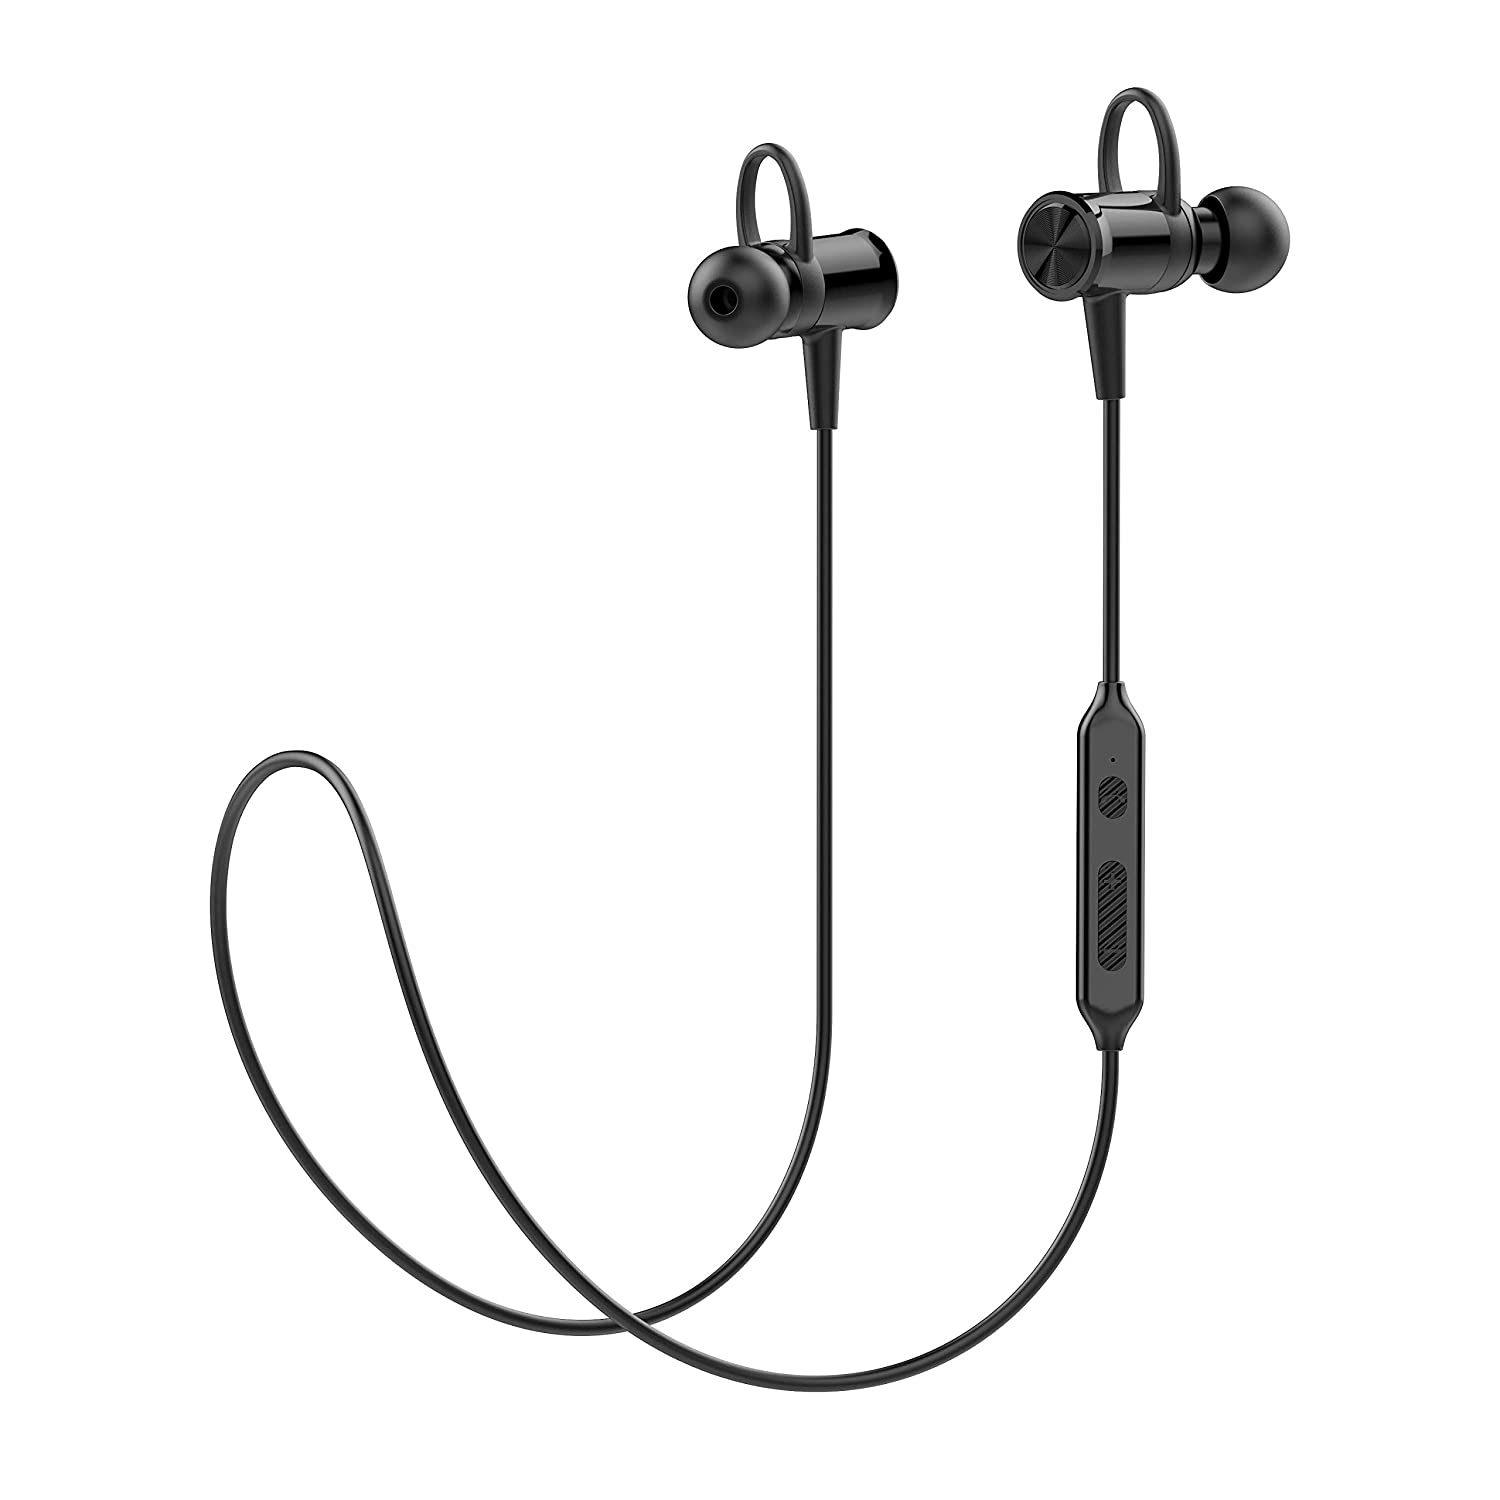 Bluetooth Headphones Running Headphones KindaiYi Best Wireless Sports Earphones w Mic IPX4 Waterproof Sweatproof Cordless in Ear Earbuds Noise Cancelling for Gym Workout 10 Hours Battery Life Black